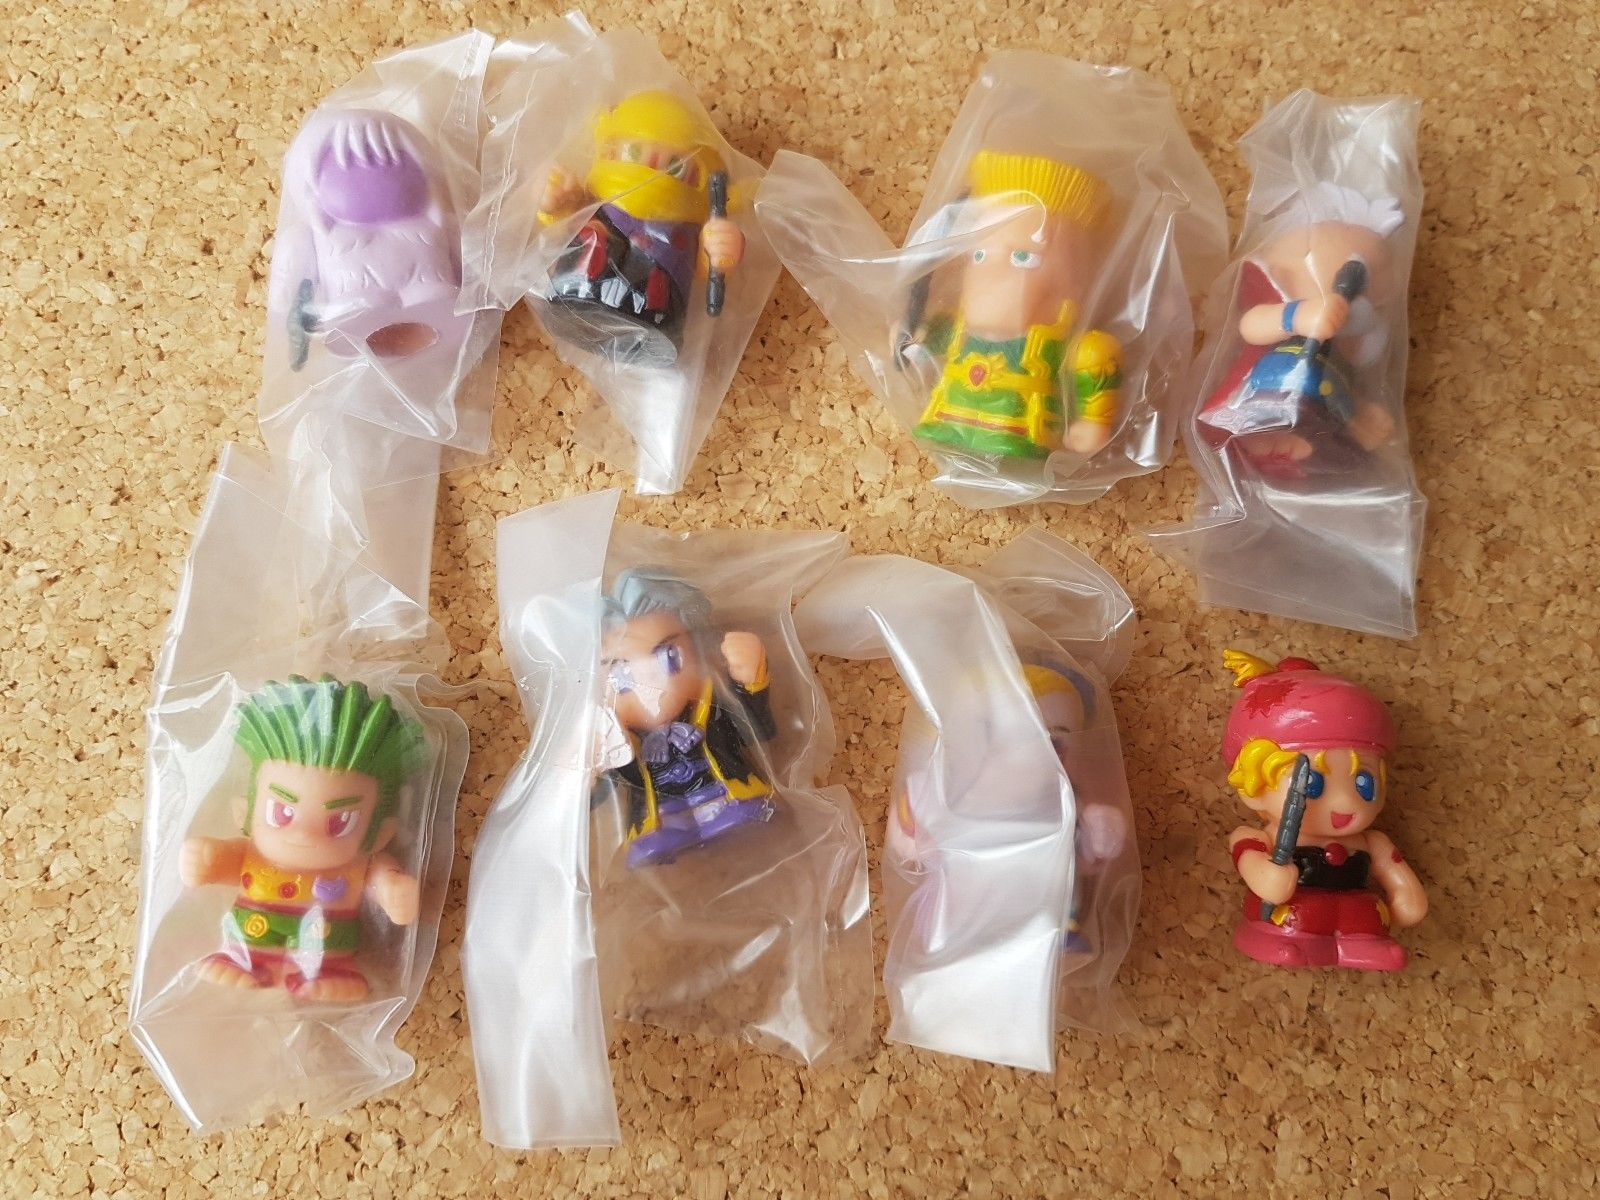 Japan Bandai FINAL FANTASY VI FB COLLECTION Part 2 Full Set of 8 Figures 1994